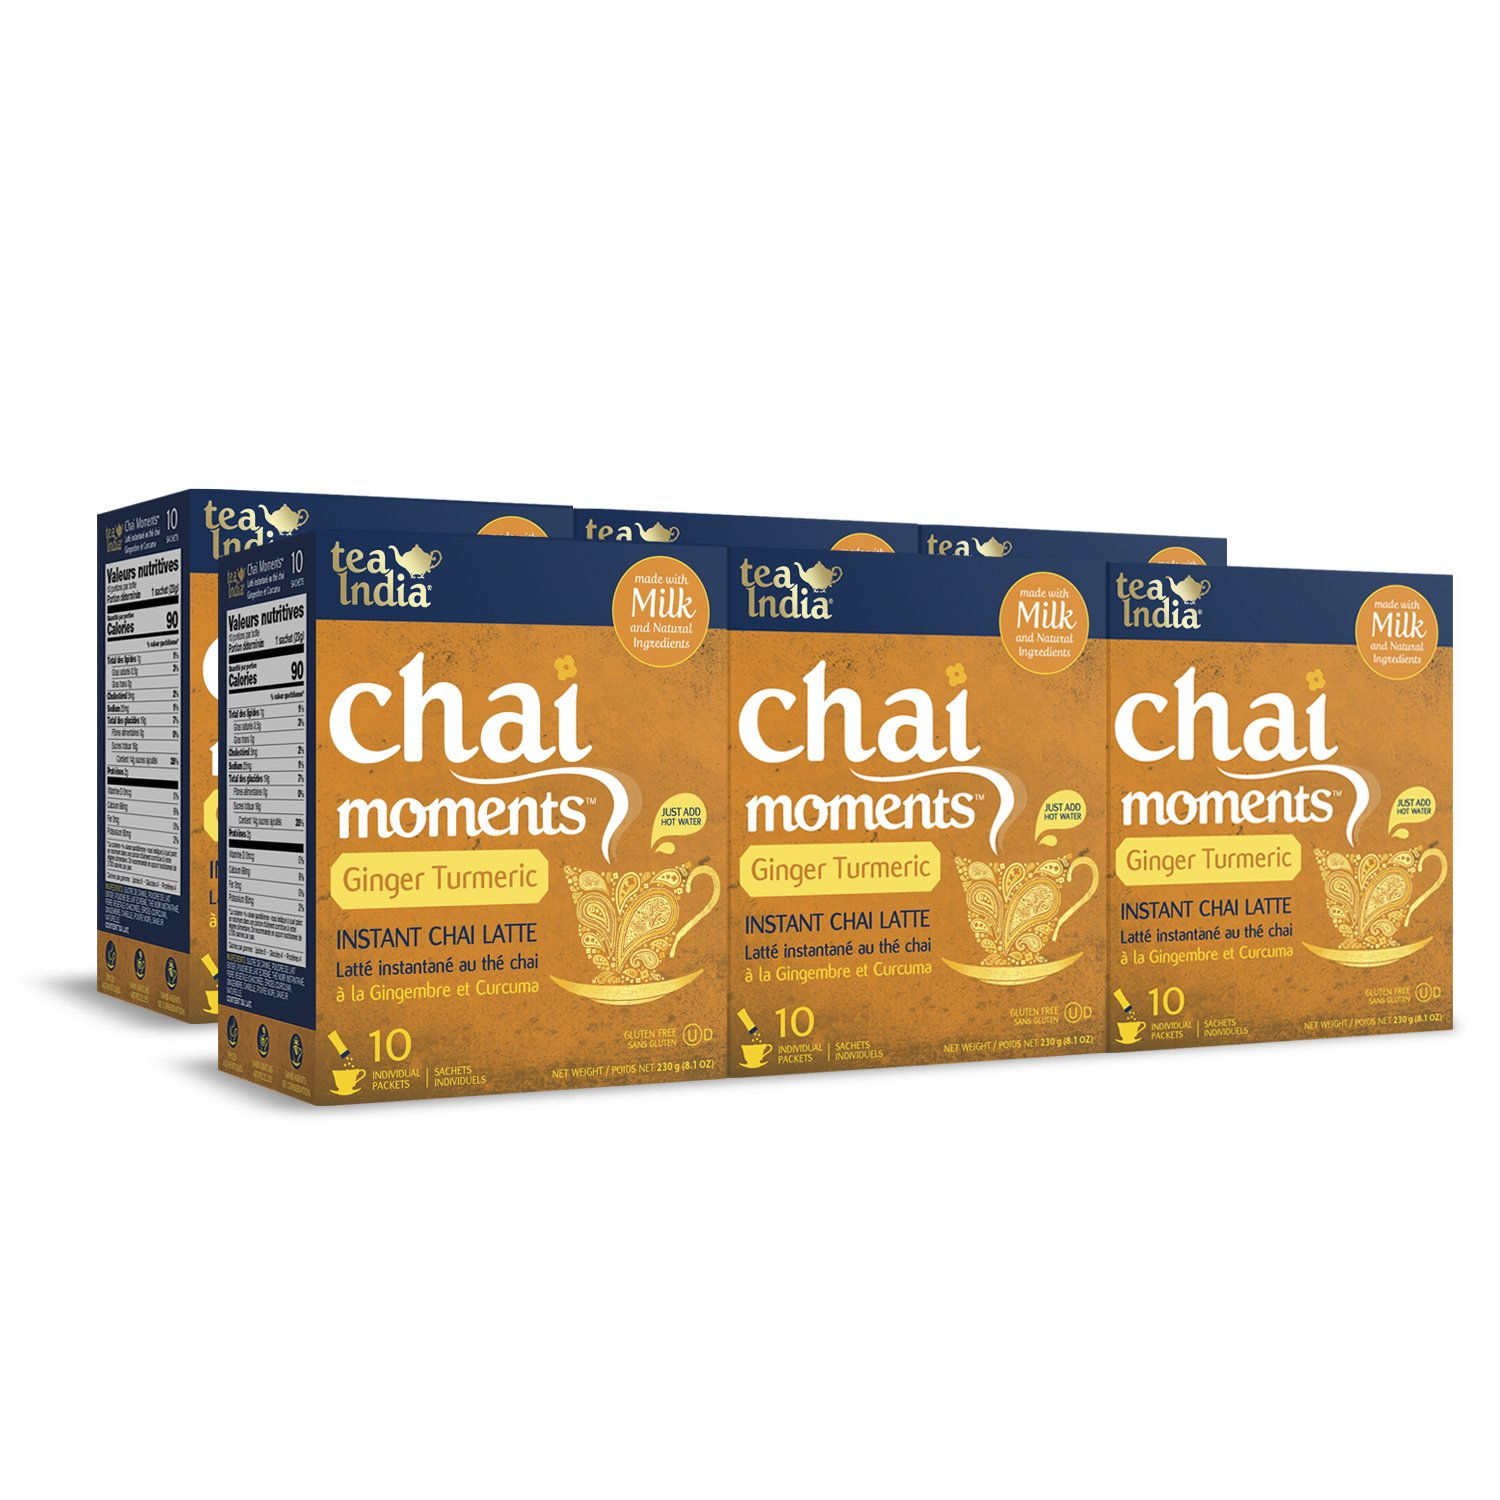 Tea India Chai Moments, Ginger Turmeric, Instant Chai Tea Latte, 10 Count (Pack of 6)